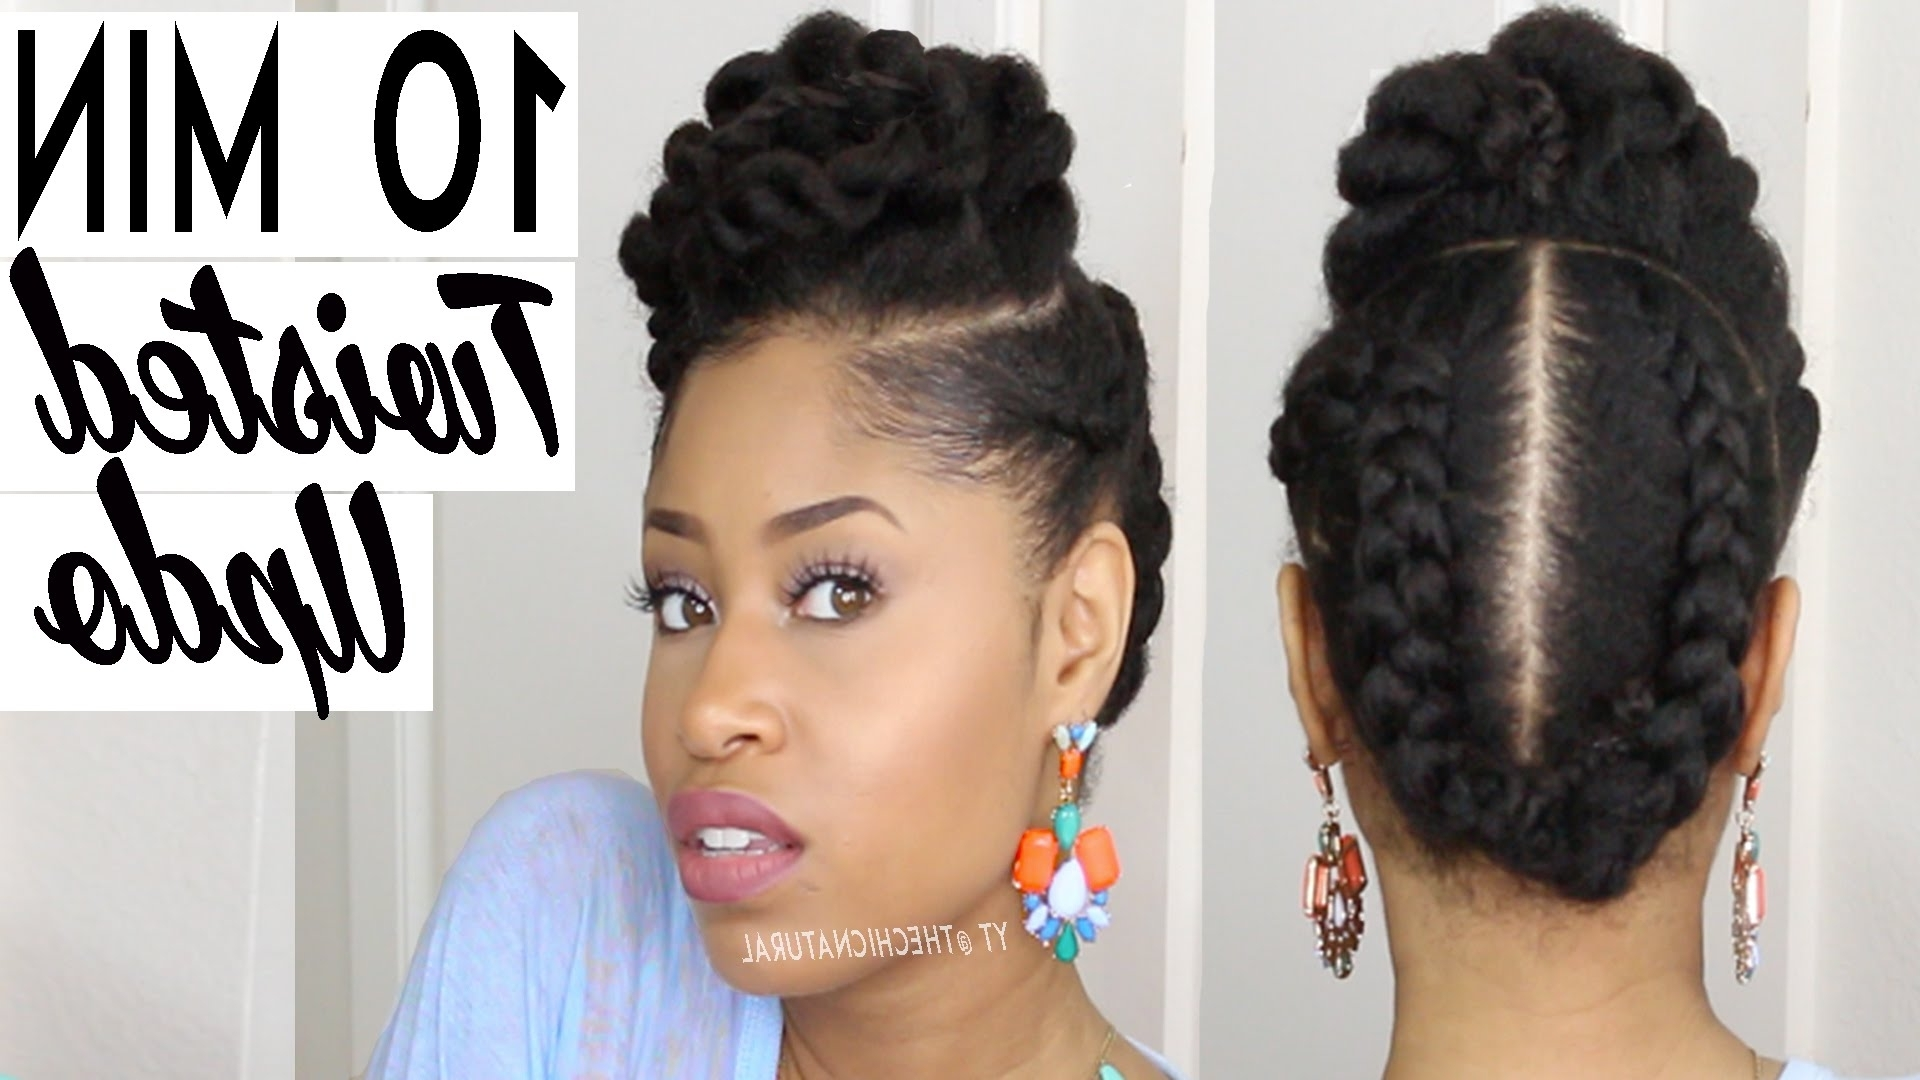 The 10 Minute Twisted Updo | Natural Hairstyle – Youtube Pertaining To Quick Twist Updo Hairstyles (View 15 of 15)